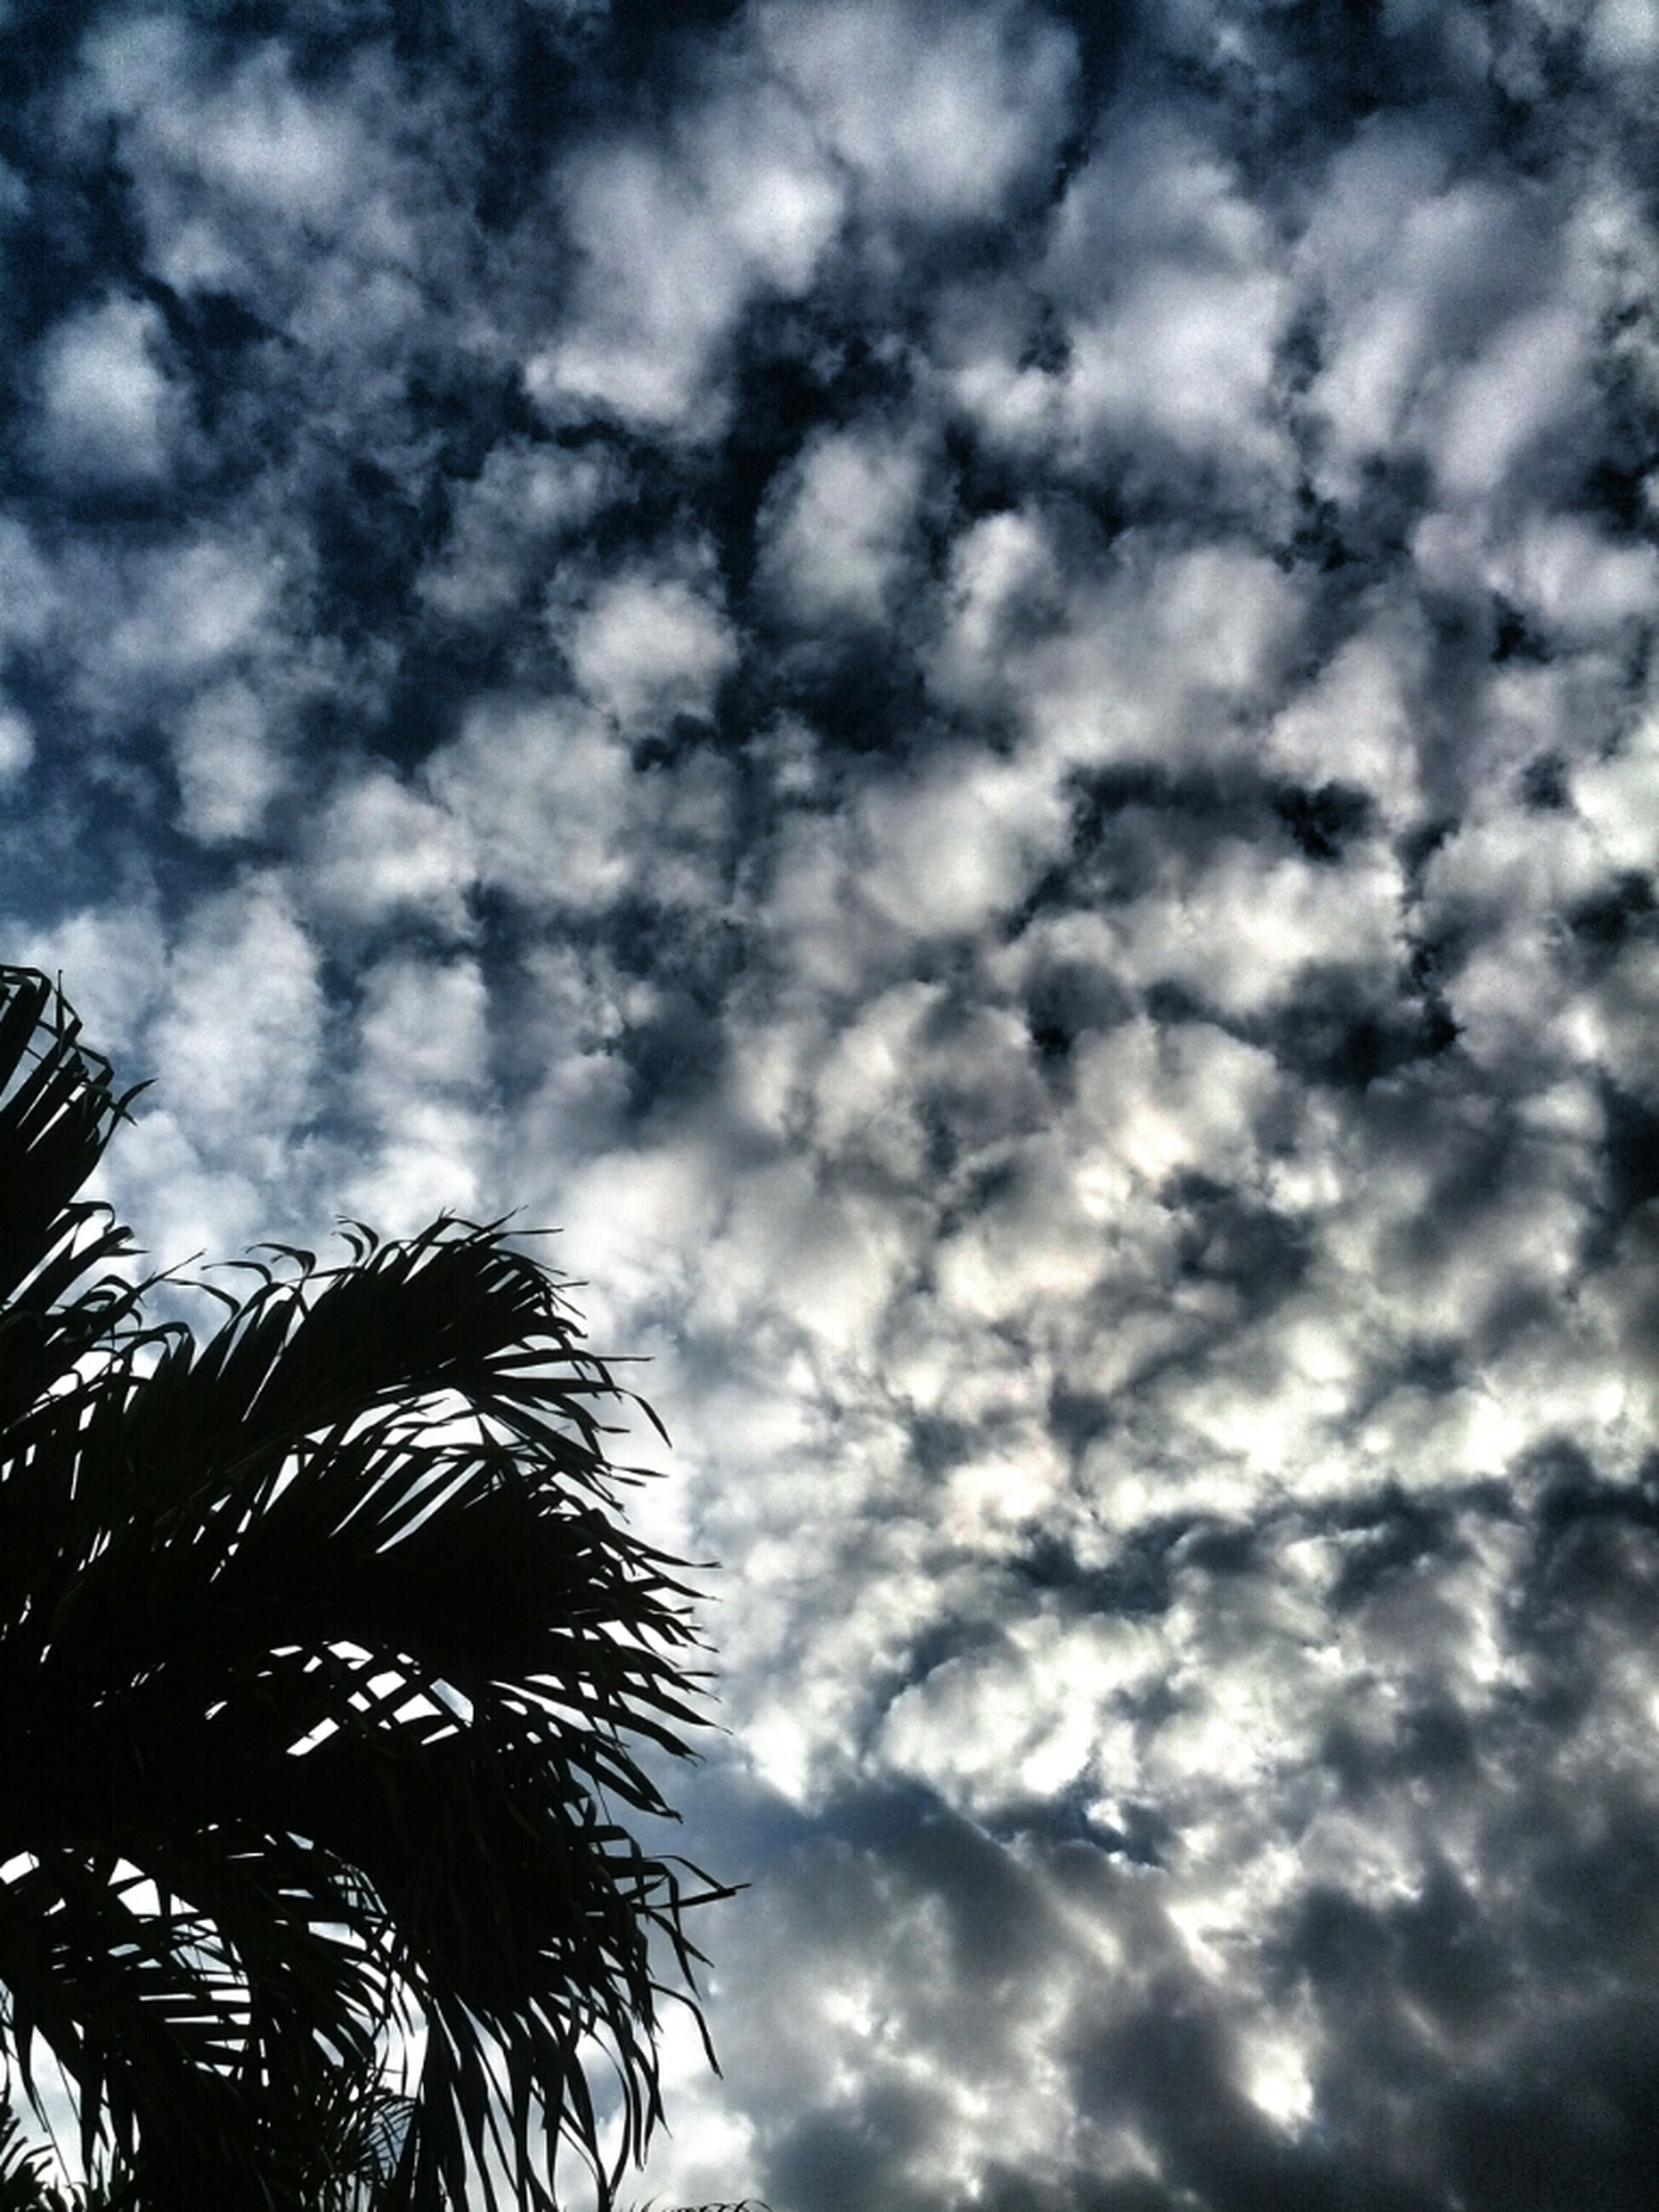 low angle view, sky, cloud - sky, palm tree, cloudy, tree, nature, cloud, growth, beauty in nature, tranquility, scenics, silhouette, outdoors, overcast, day, no people, high section, tranquil scene, weather